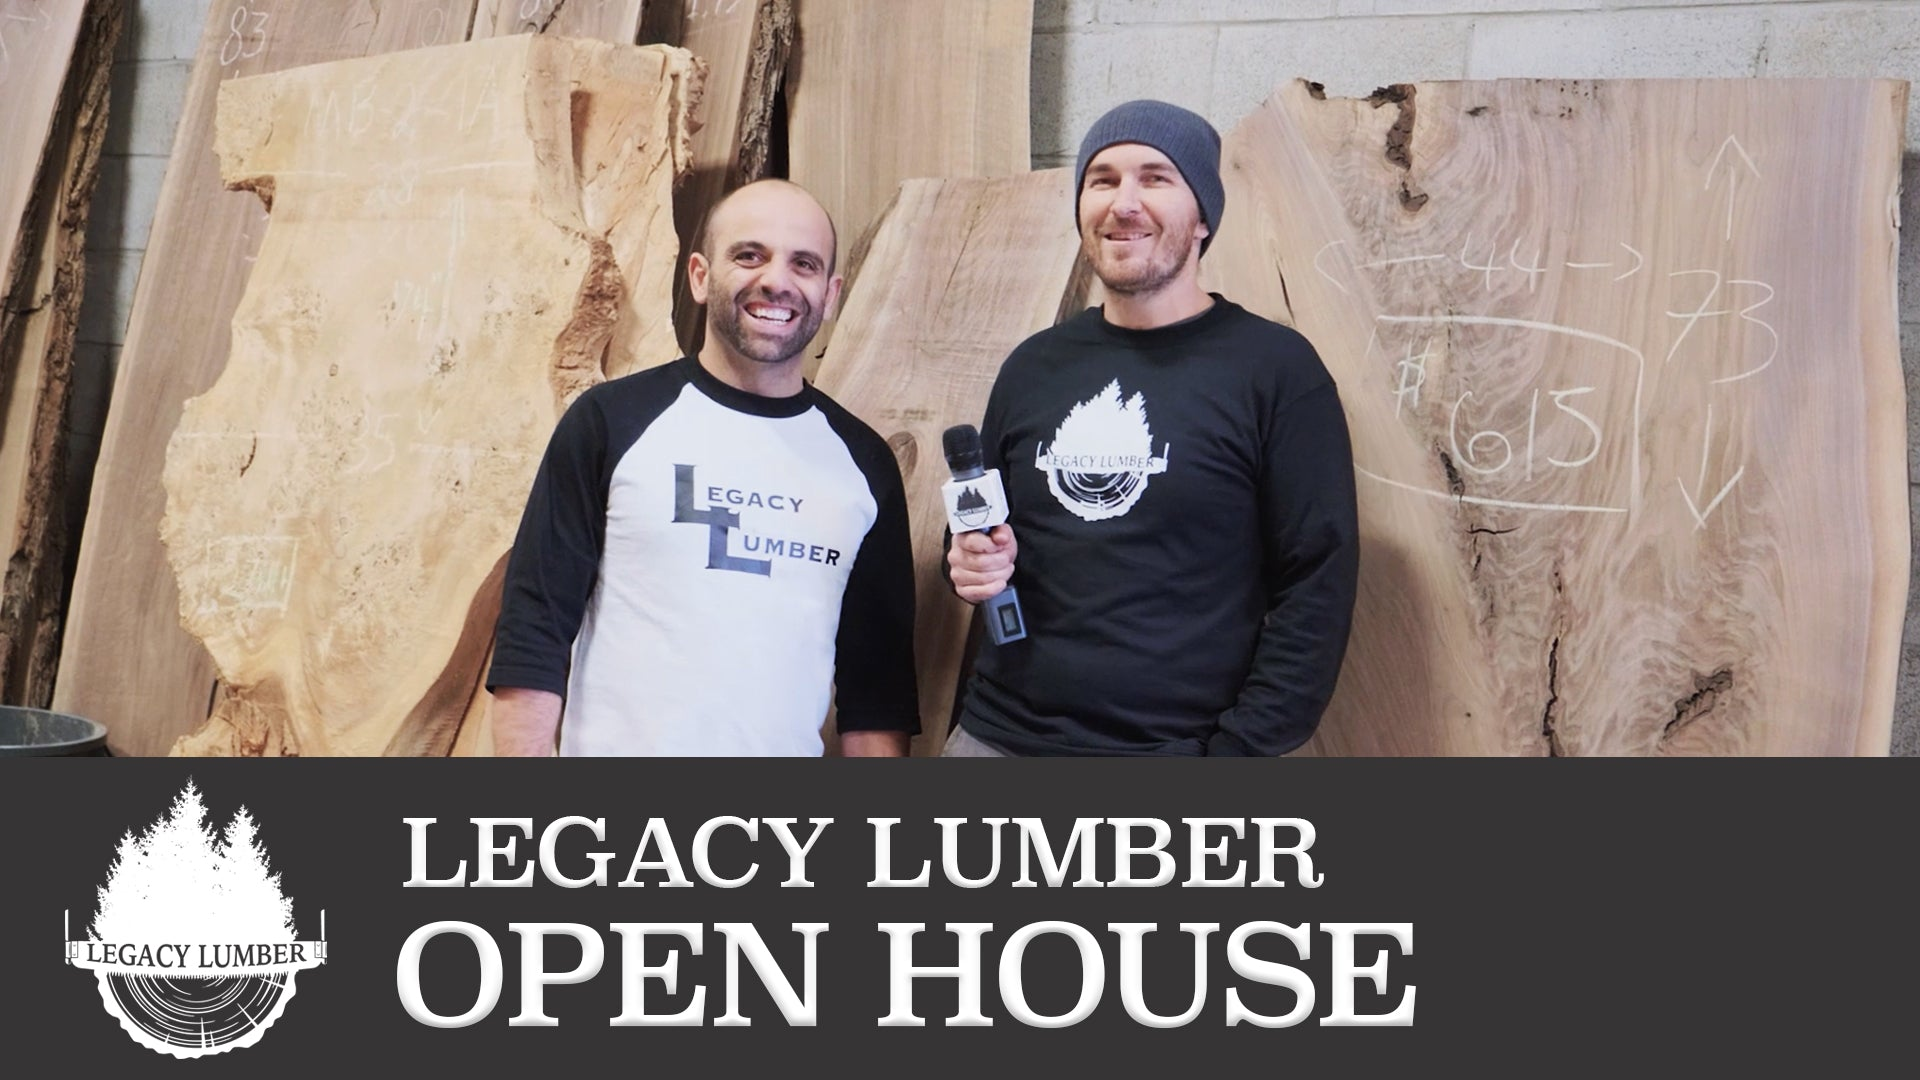 We've just launched Legacy Lumber's Youtube channel!